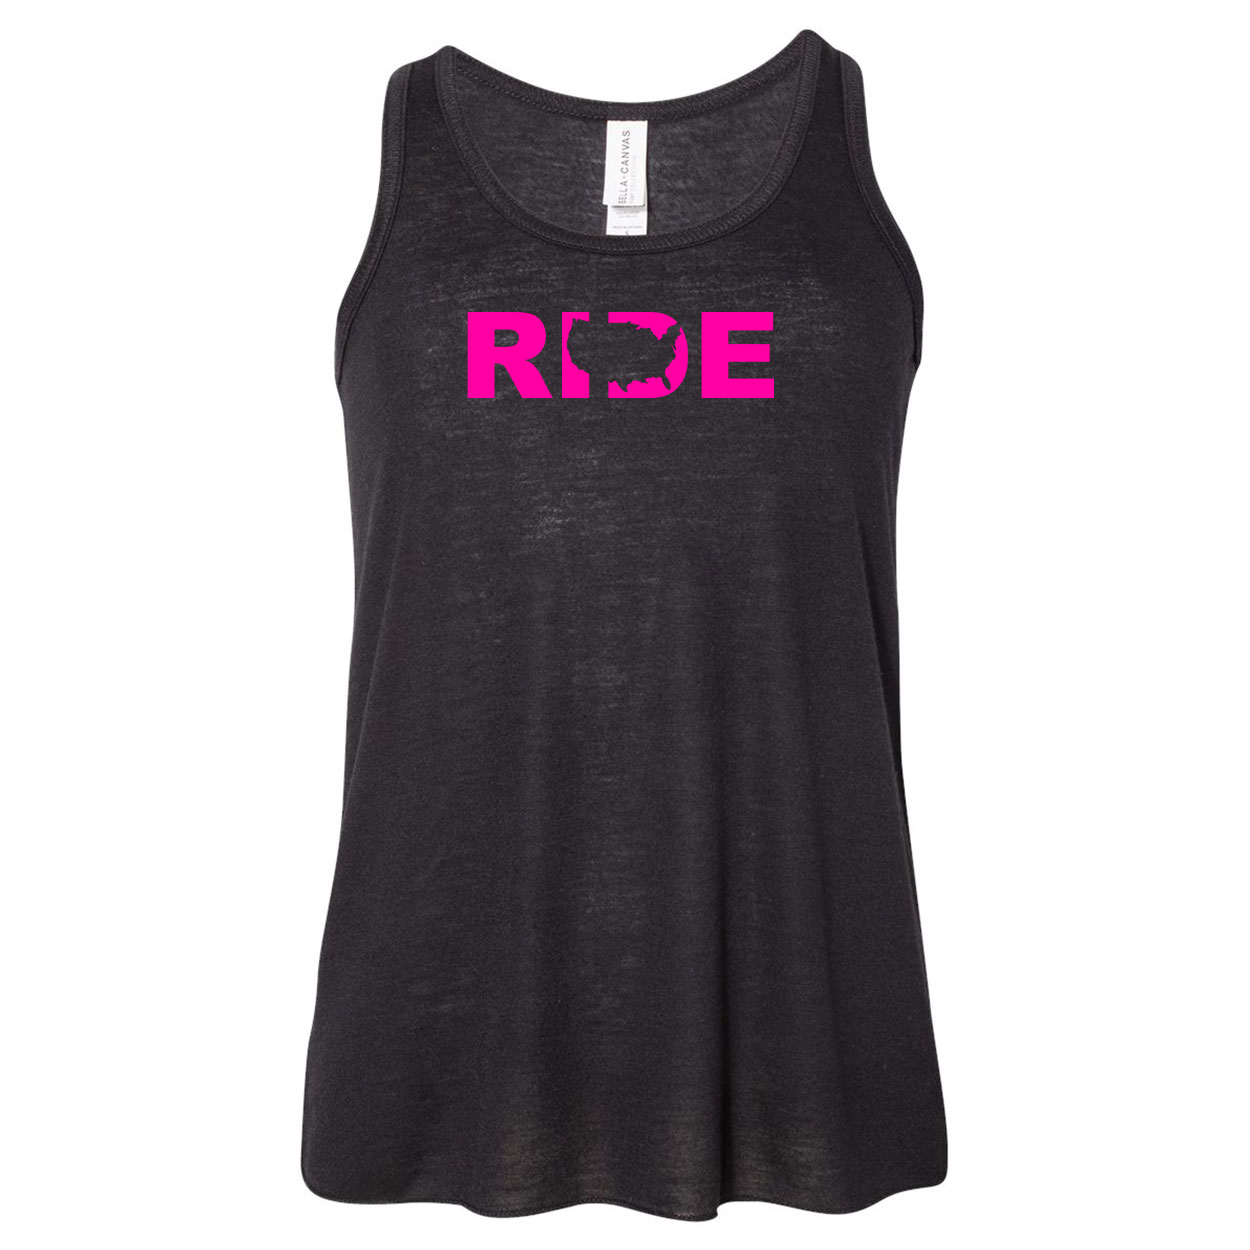 Ride United States Classic Youth Girls Flowy Racerback Tank Top Black (Pink Logo)